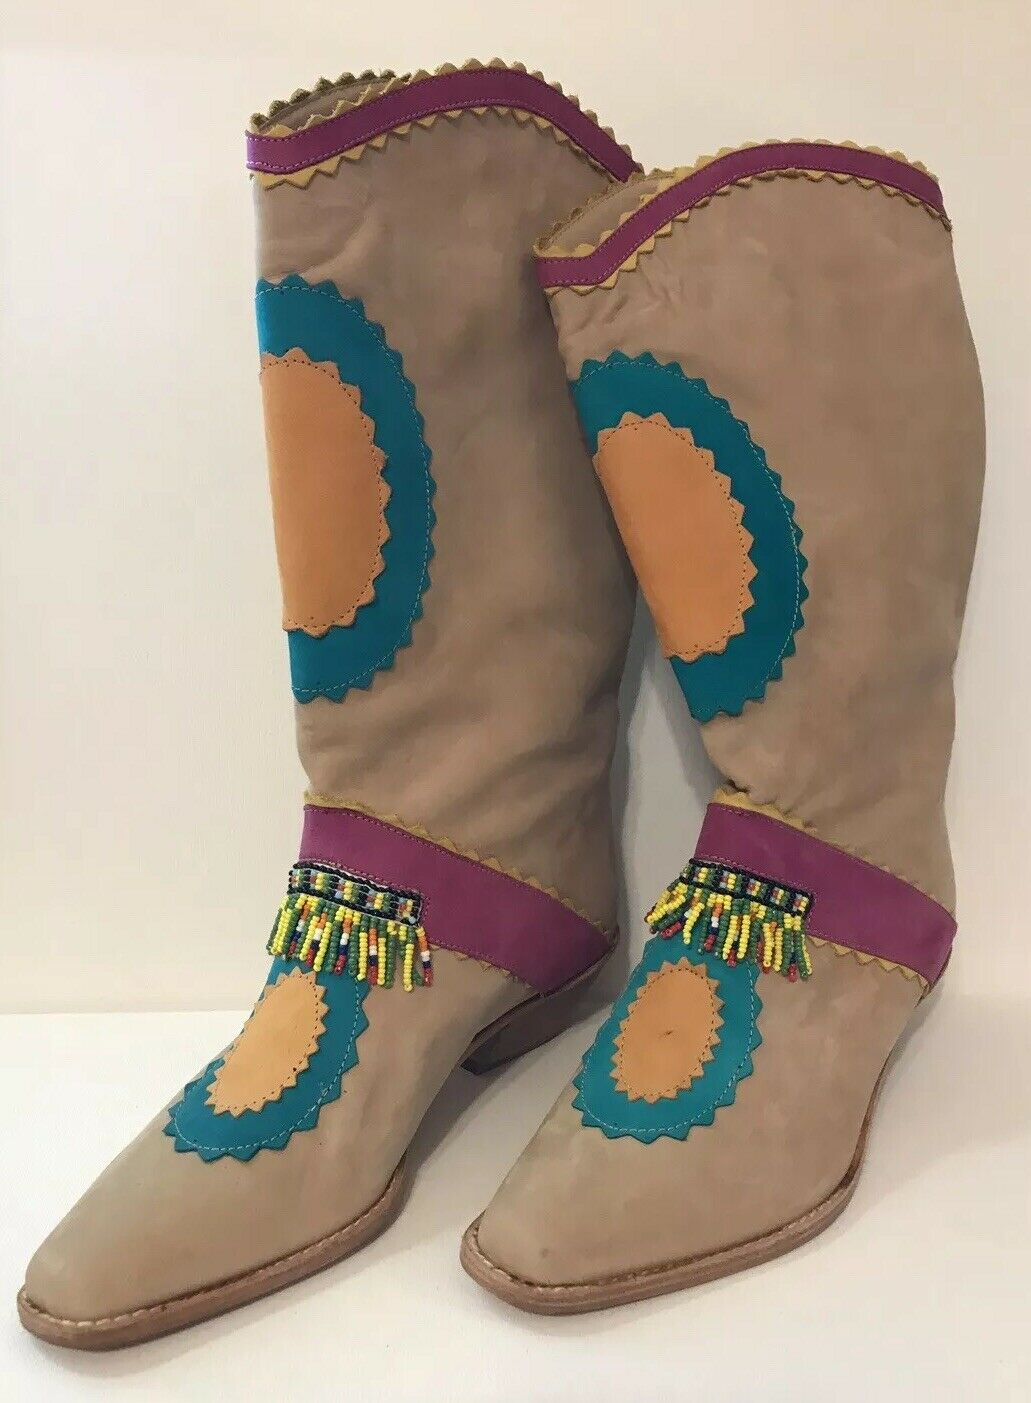 NWTs Vintage Biondini Size 6.5 Tan Multi-color Western Boots with Beaded Fringe